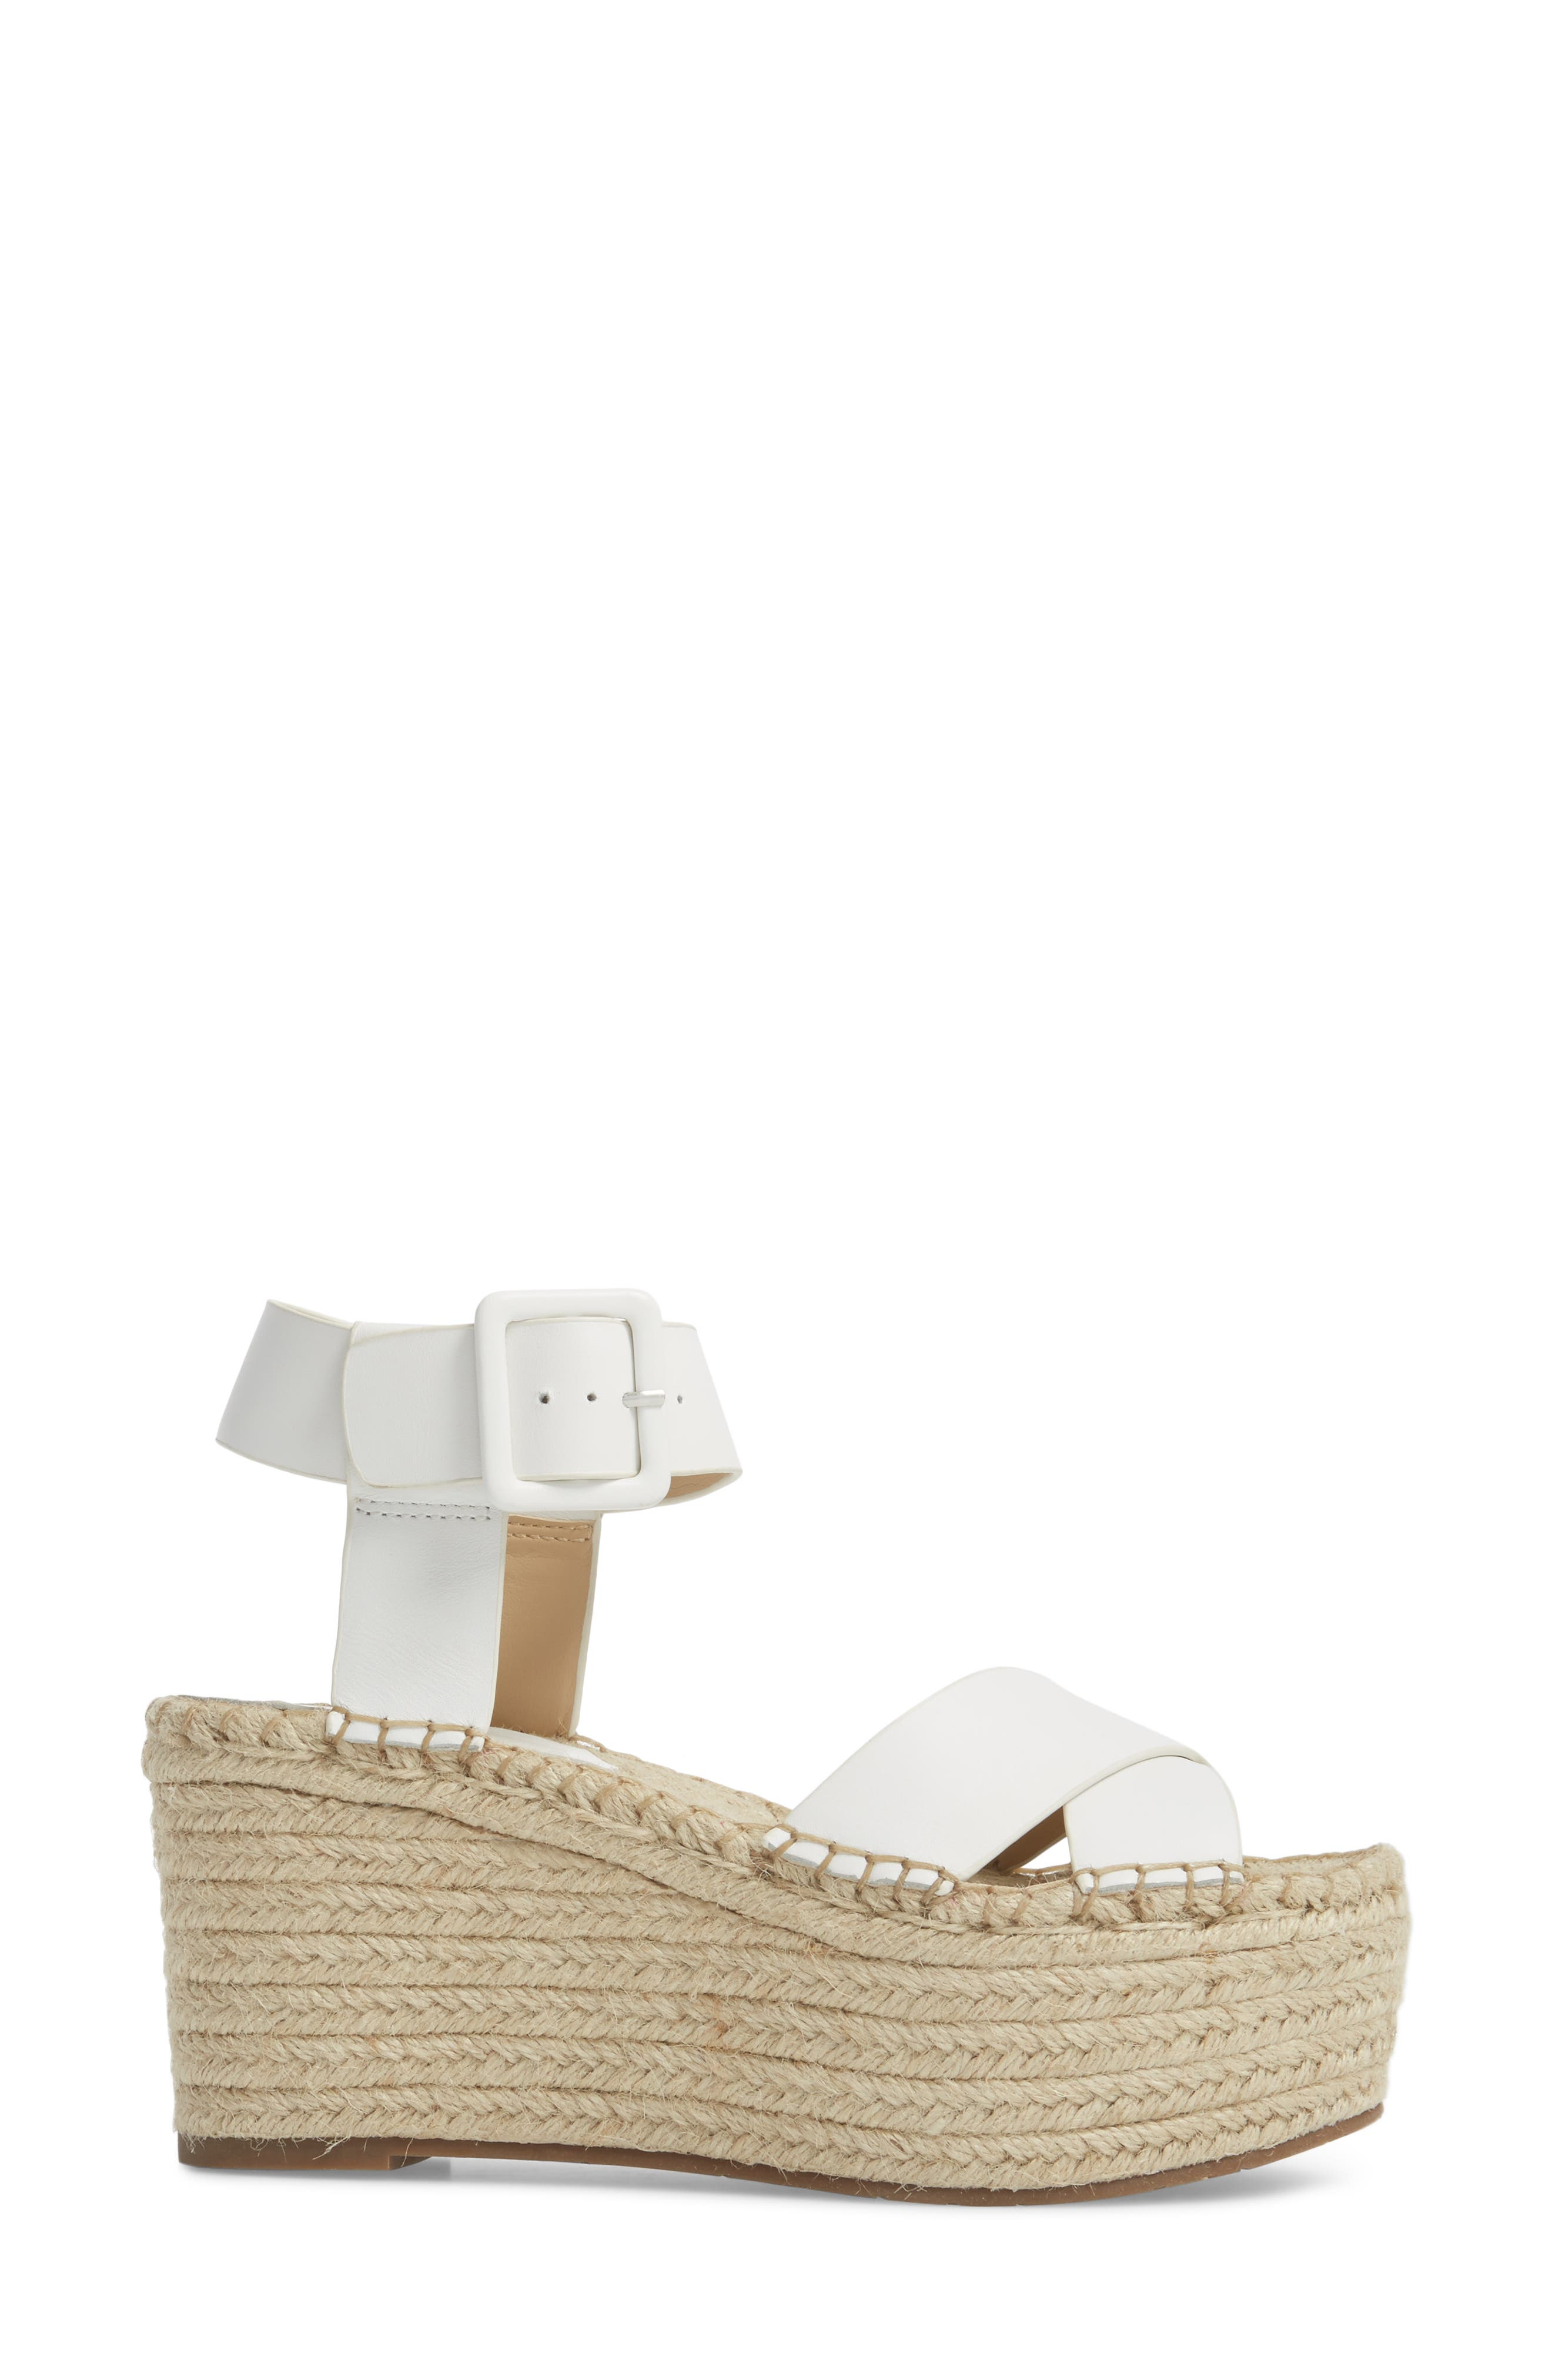 'Randall' Platform Wedge,                             Alternate thumbnail 3, color,                             112